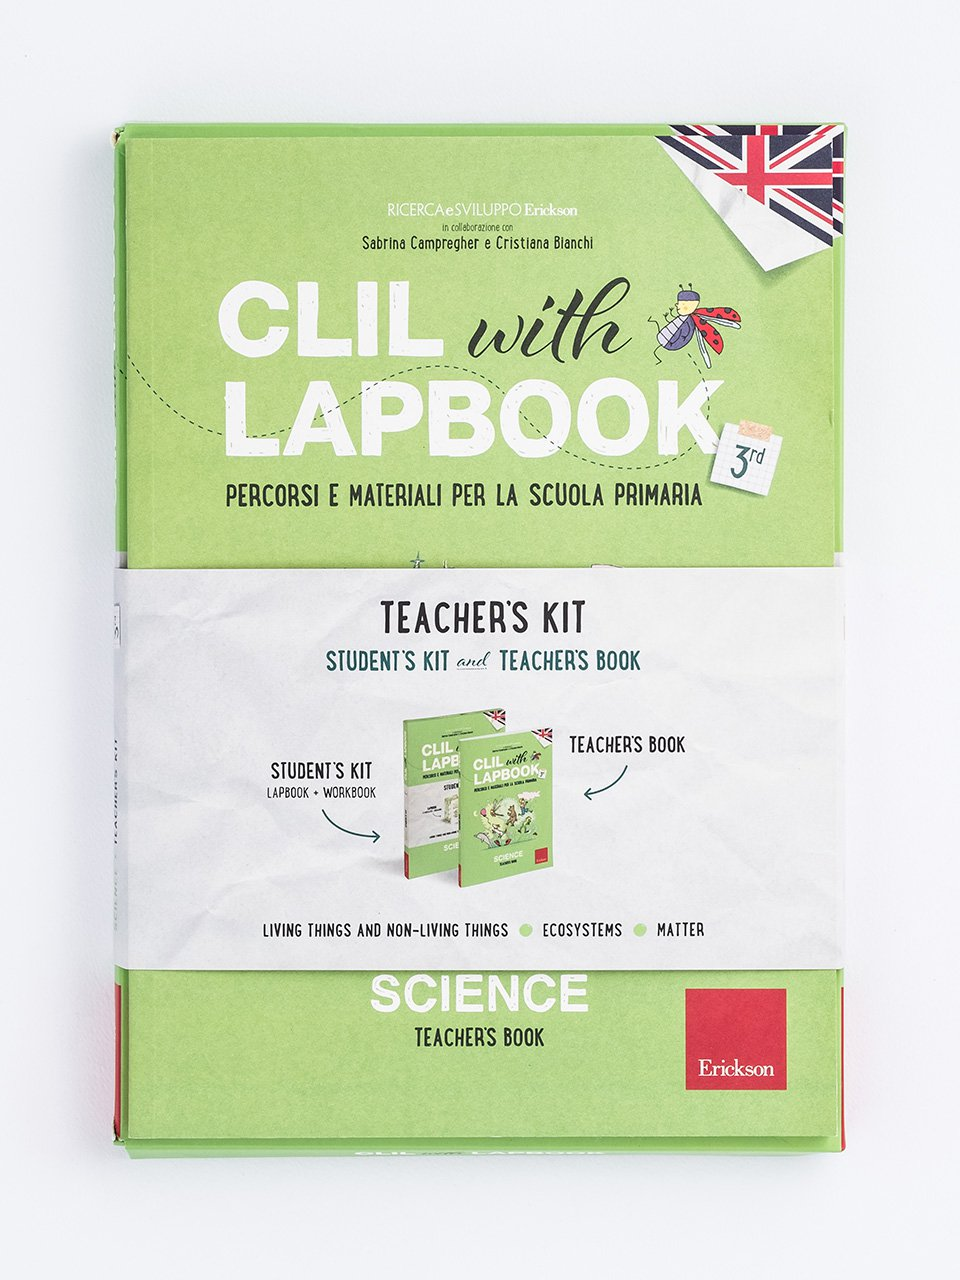 CLIL with LAPBOOK - SCIENCE - Classe terza - ScienzeImparo 3 - Libri - Erickson